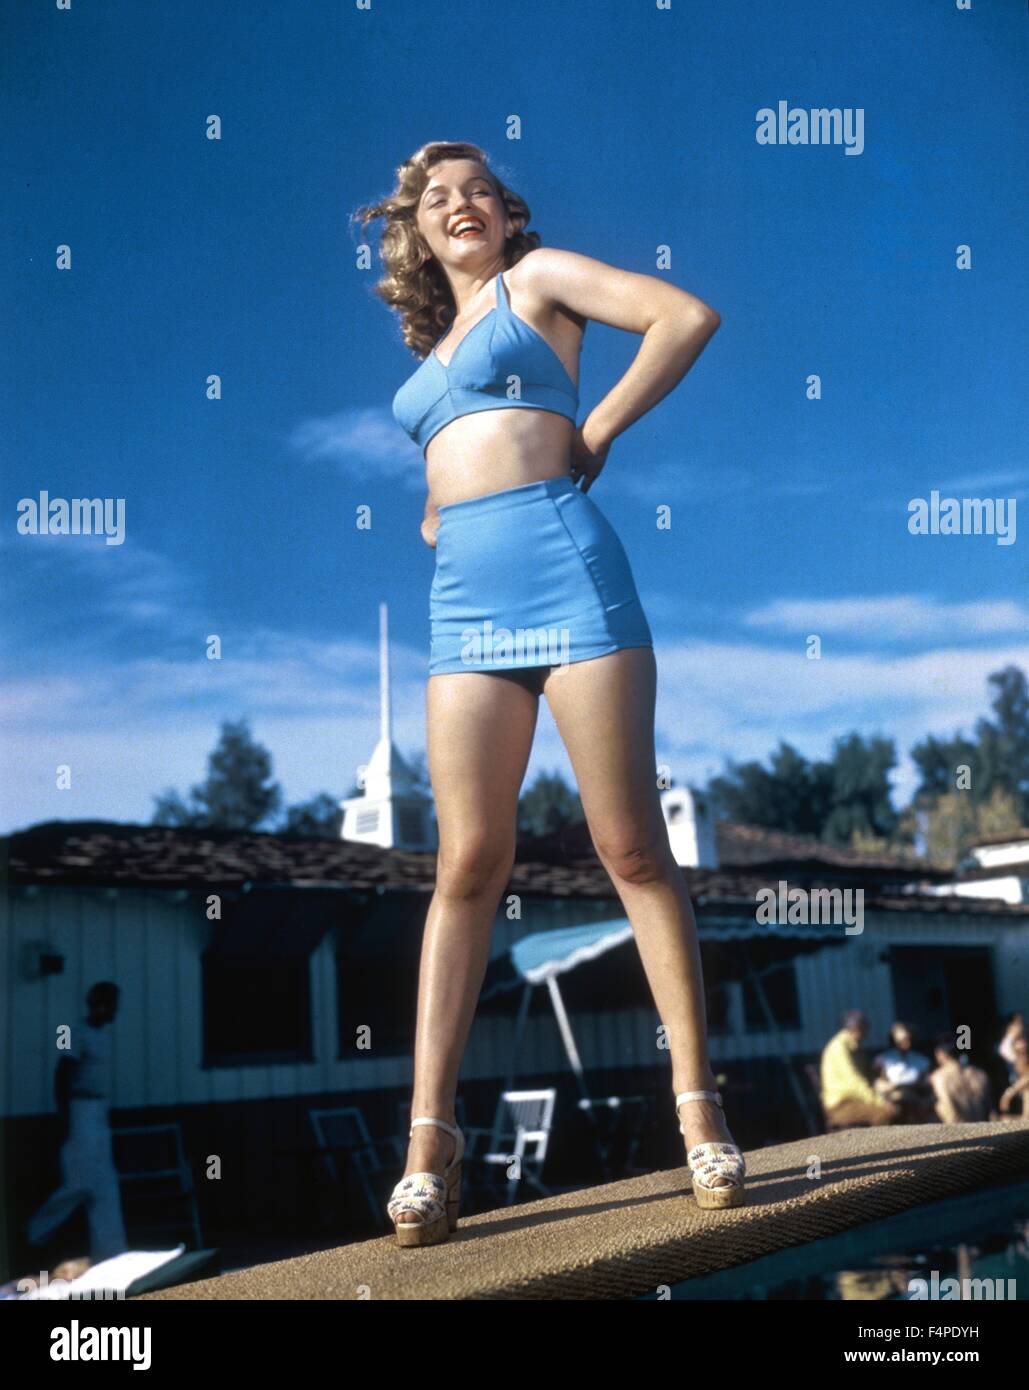 Marilyn Monroe in 1948/49 - Stock Image